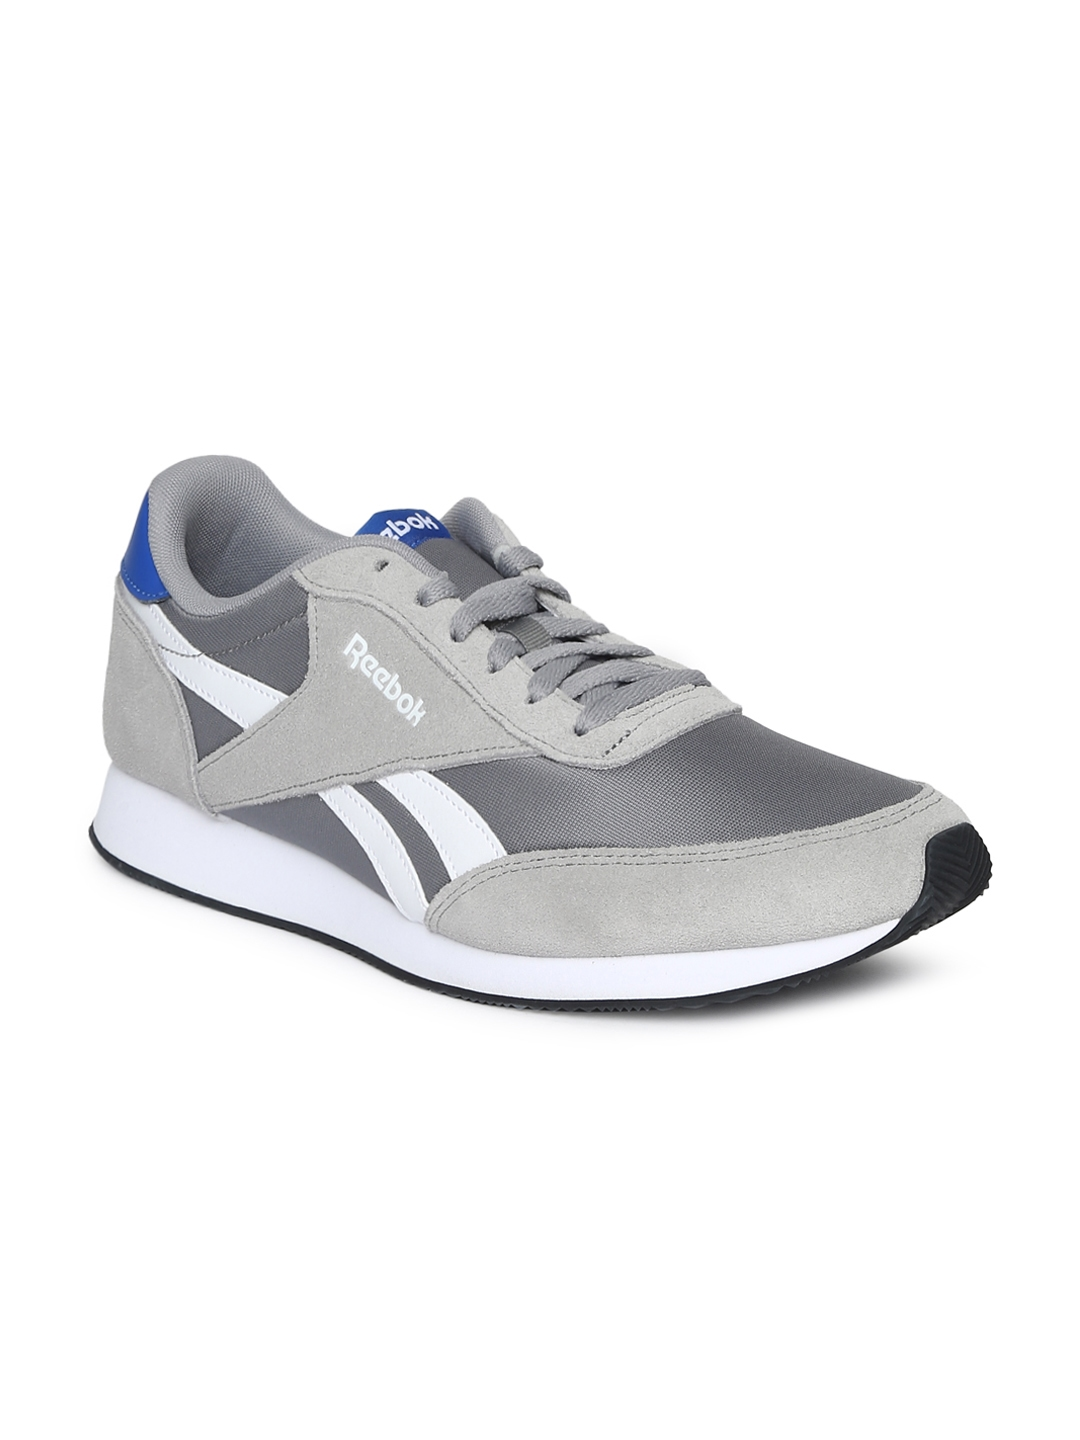 9419a147f979 Reebok Classic Men Grey Royal Cl Jogger Running Shoes Sports